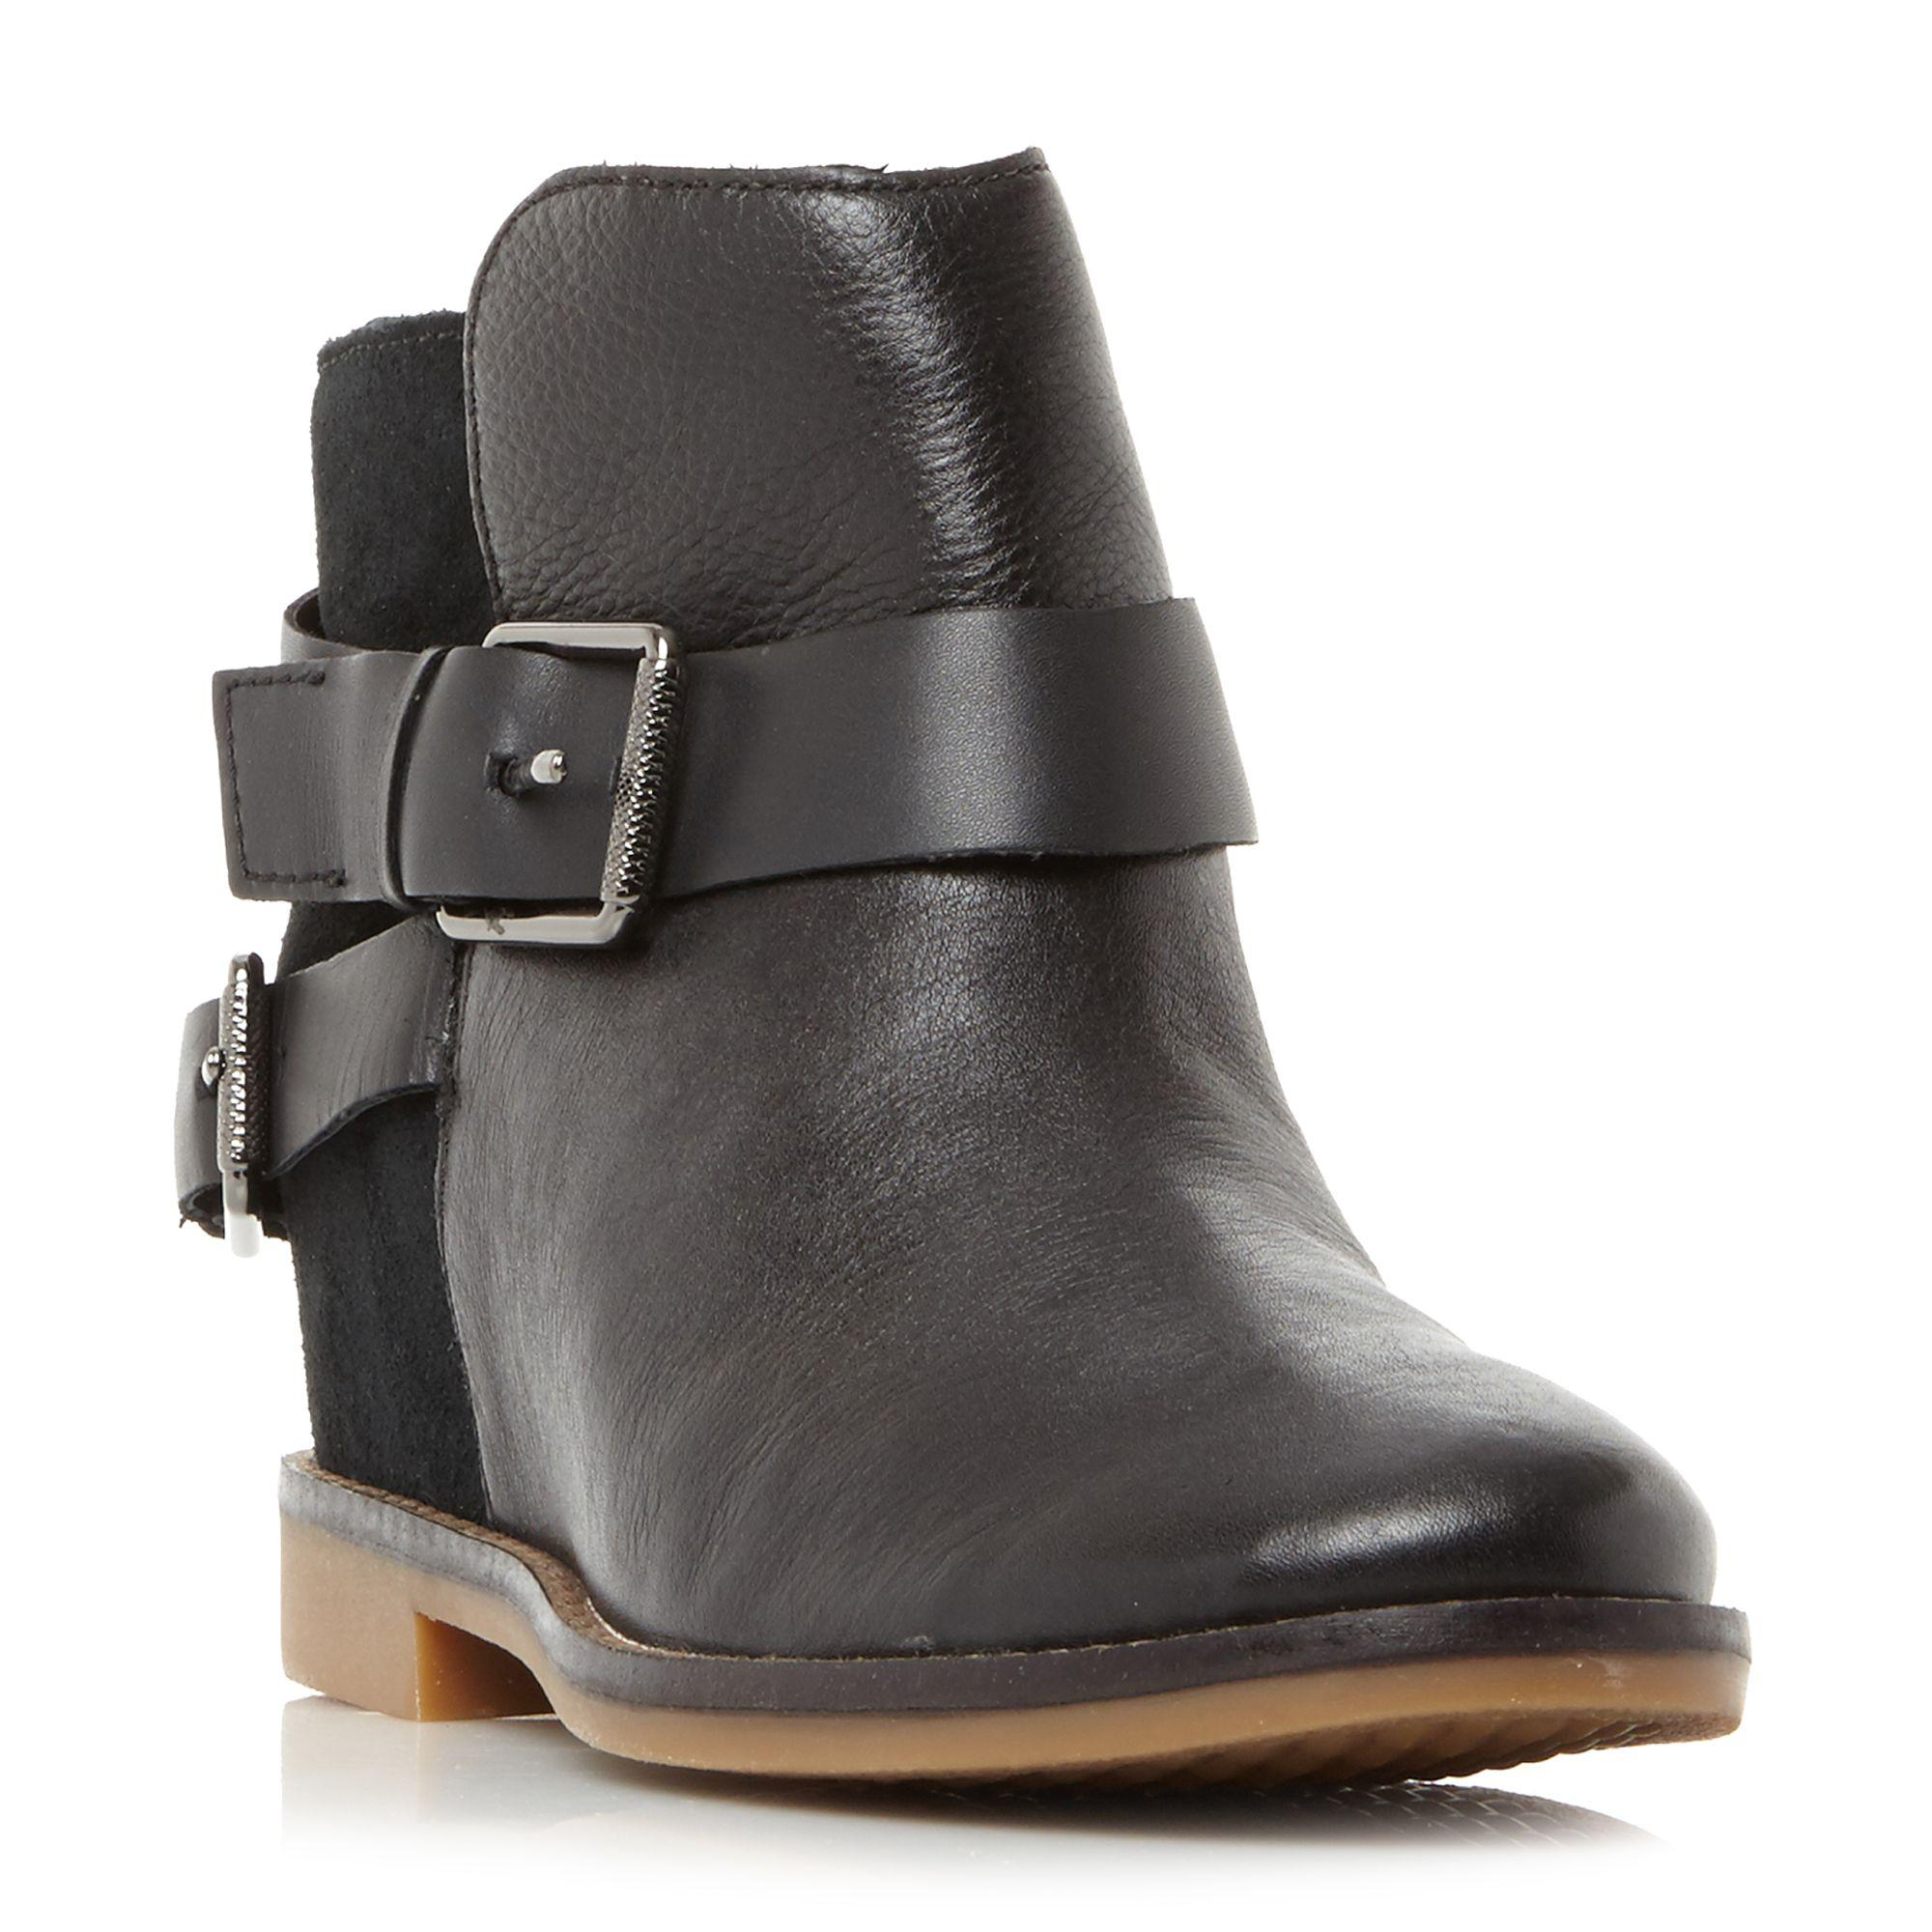 3ac56ab525ea Hush Puppies Baubie Felise Strap Detail Ankle Boots in Black - Save ...